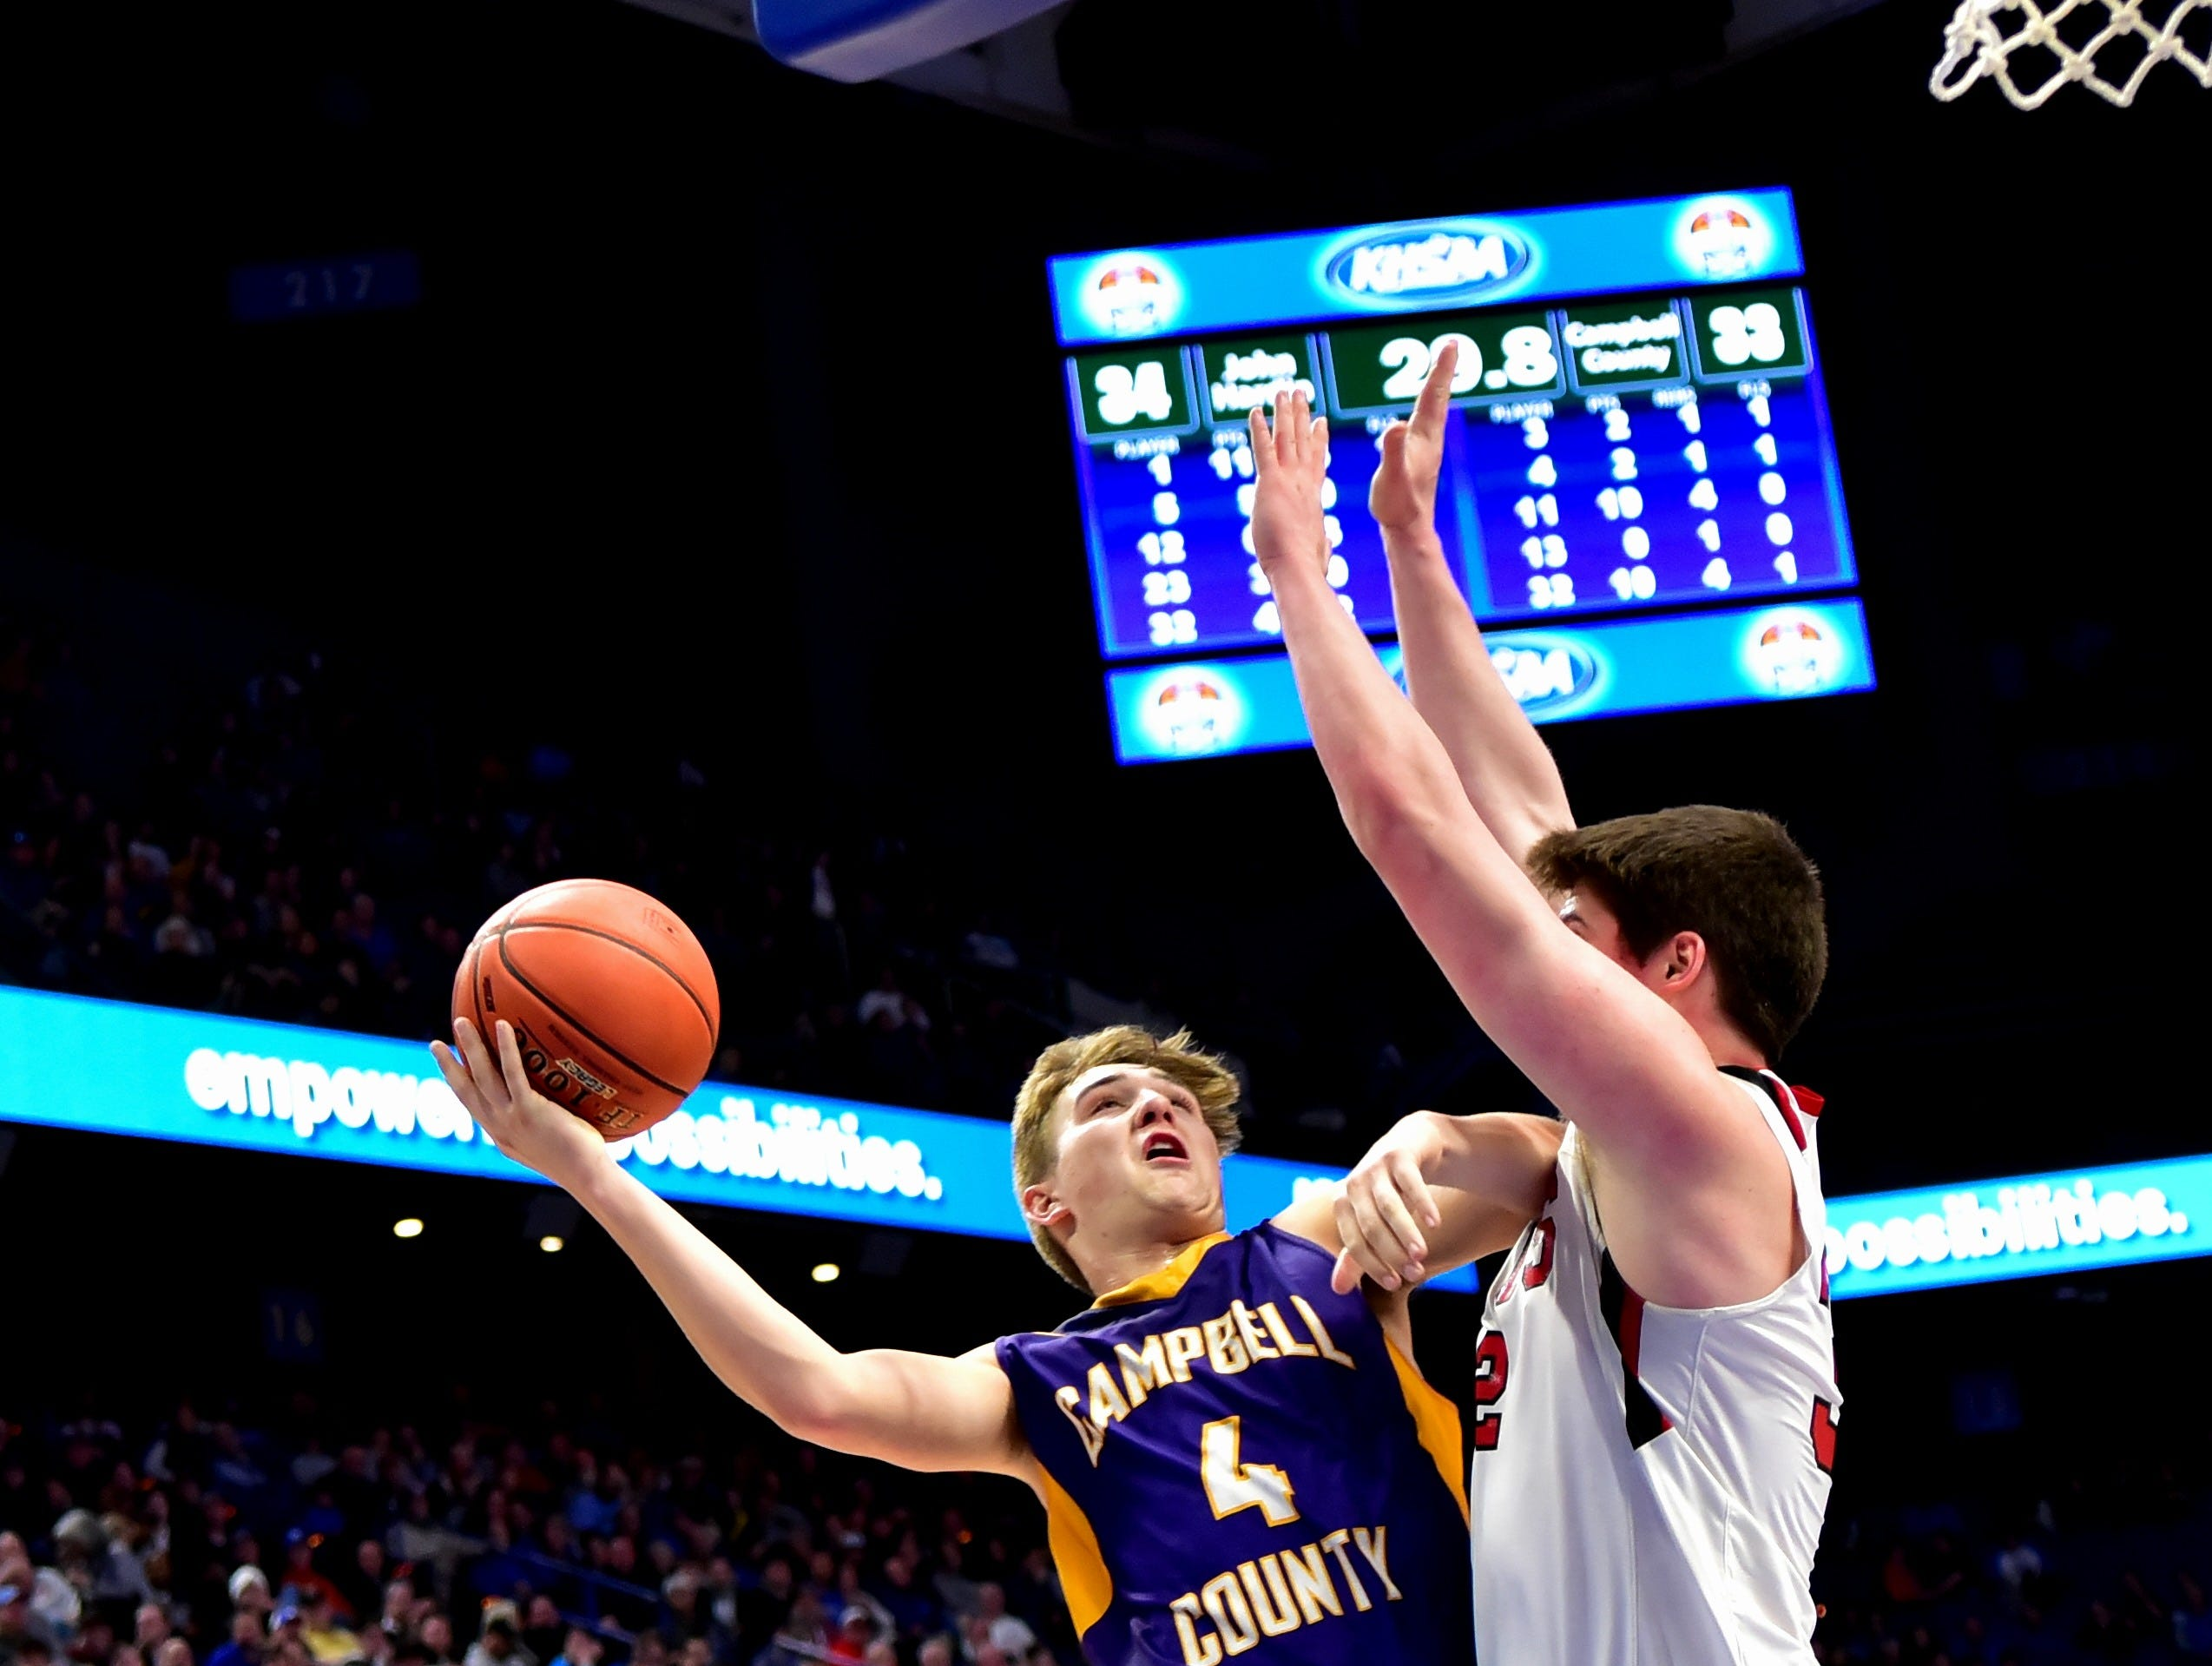 """Drew Wilson (4) of Campbell County collects an """"And One"""" on his way to the hoop for the Camels in their 61-60 win in first round action at the KHSAA Sweet 16 Tournament at Rupp Arena in Lexington, KY, March 6, 2019"""